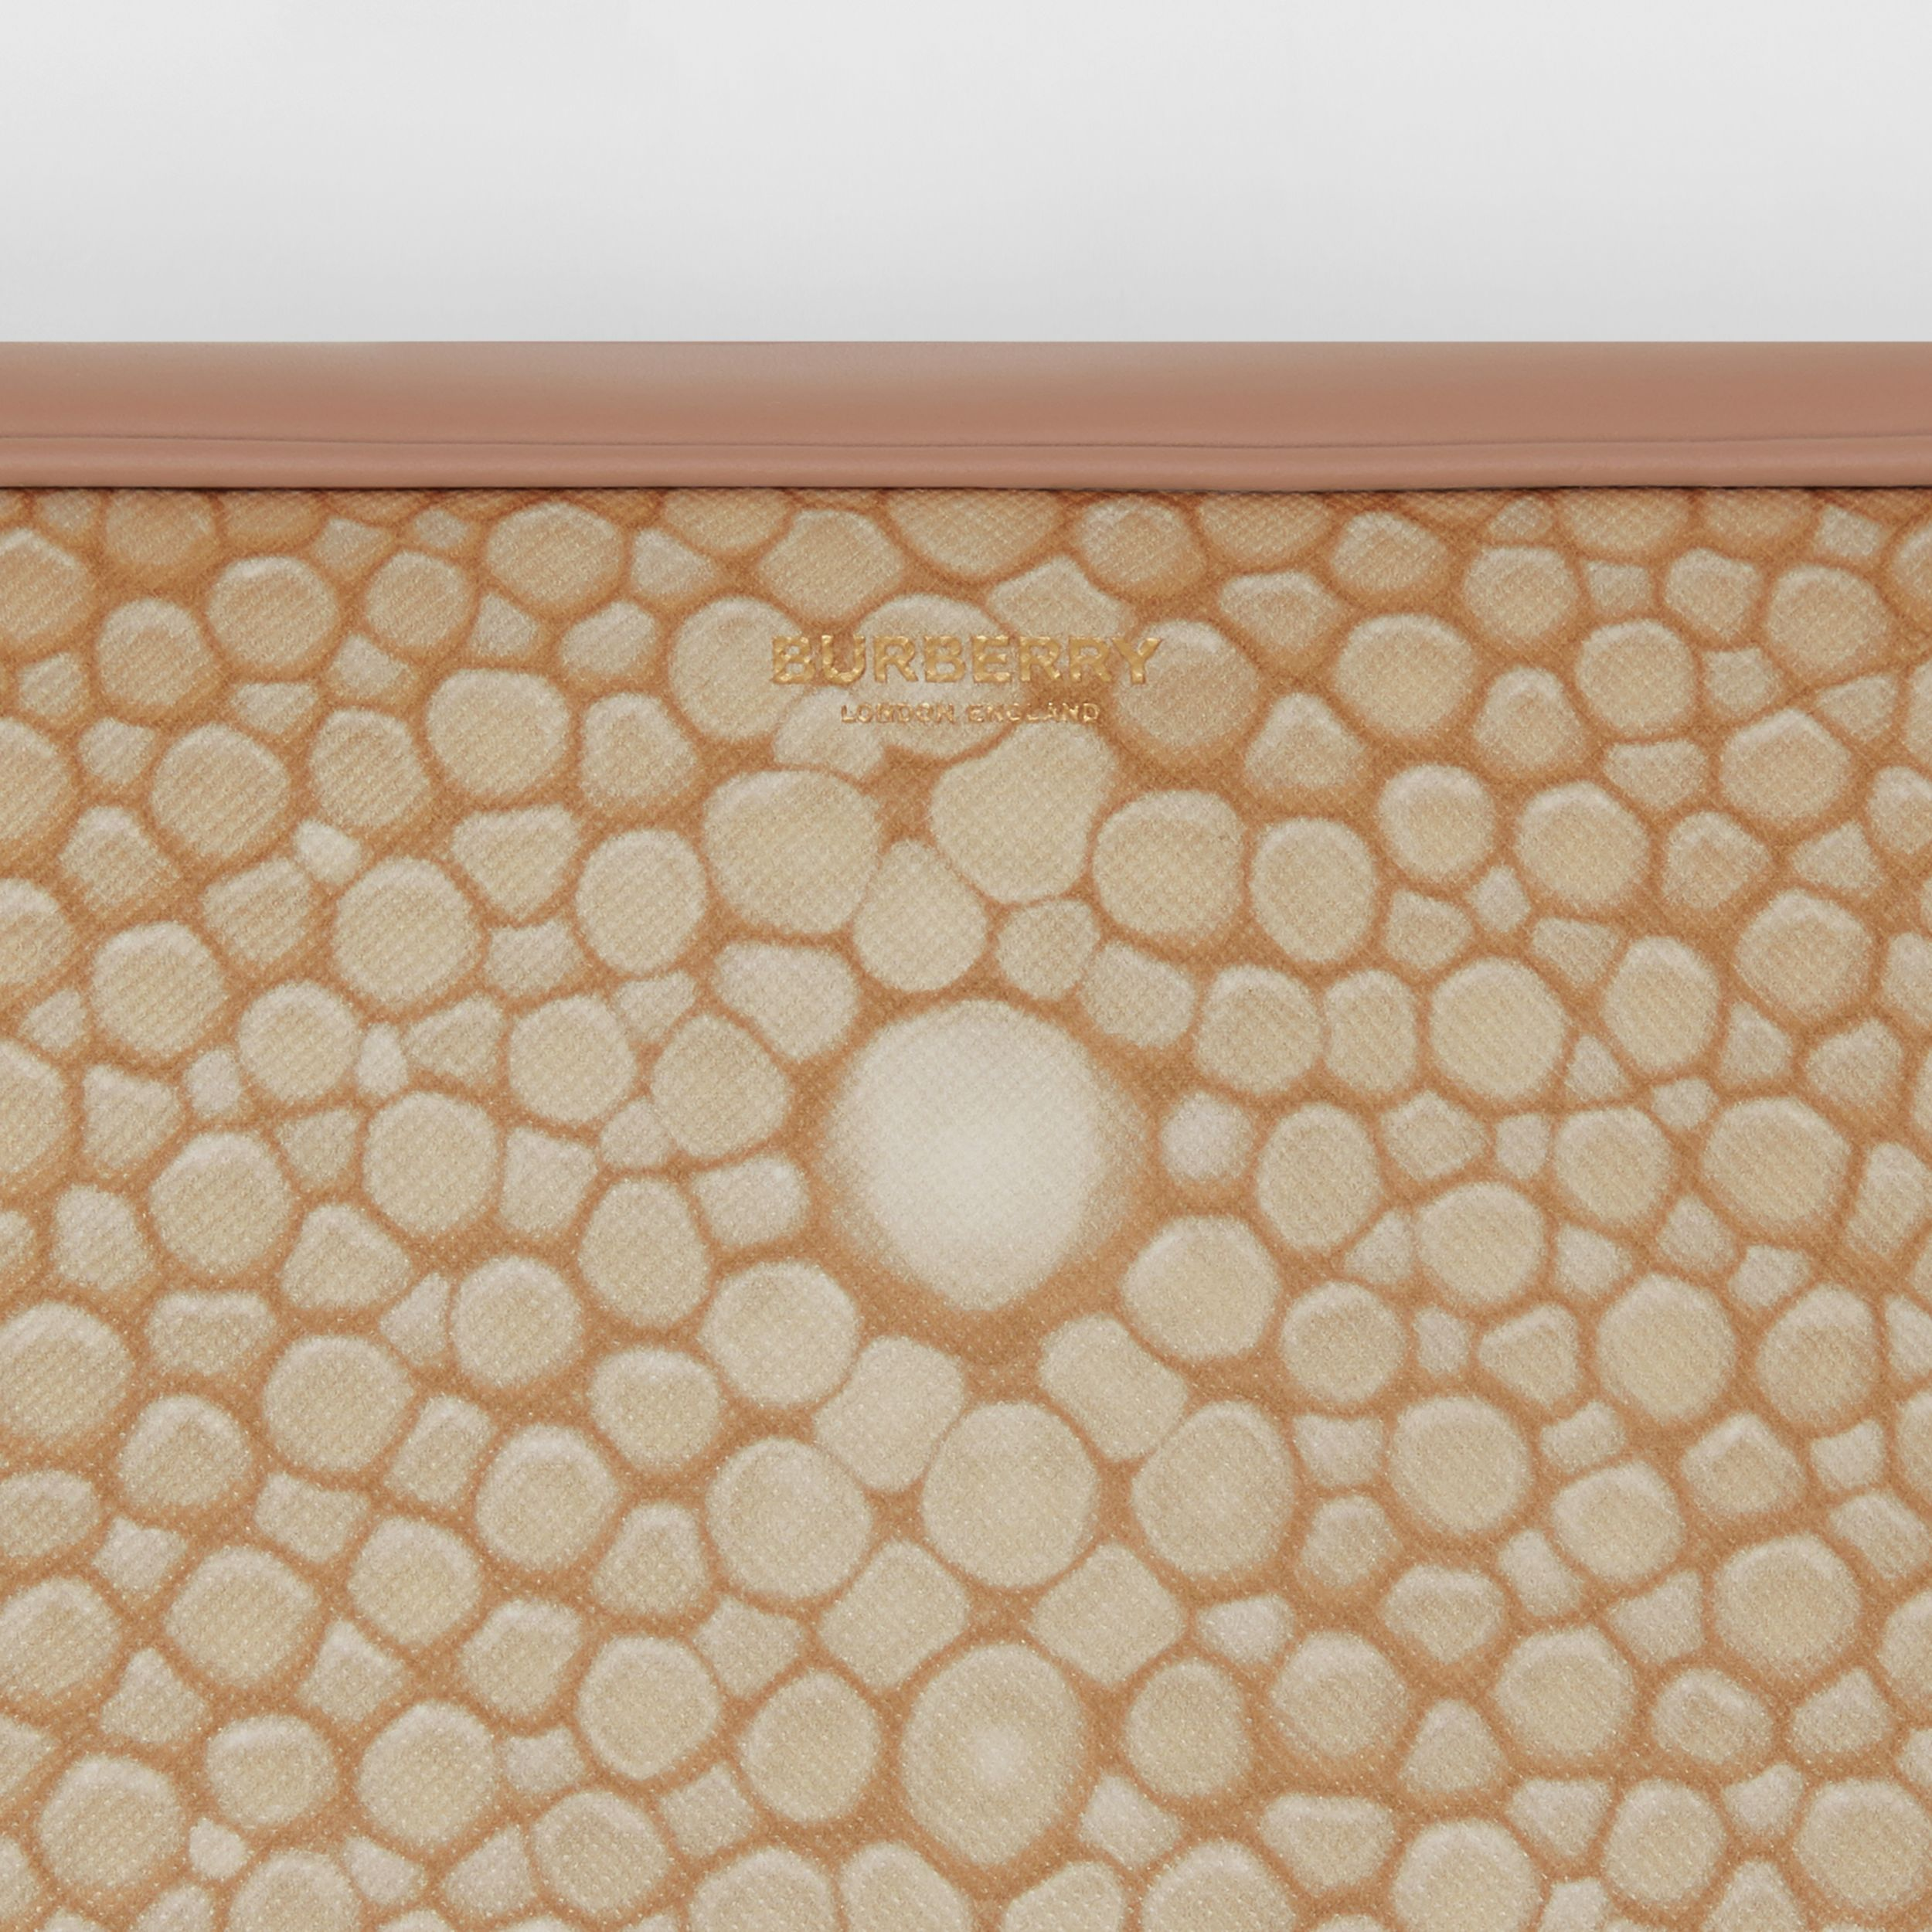 Fish-scale Print and Leather Cube Bum Bag in Light Sand - Women | Burberry - 2